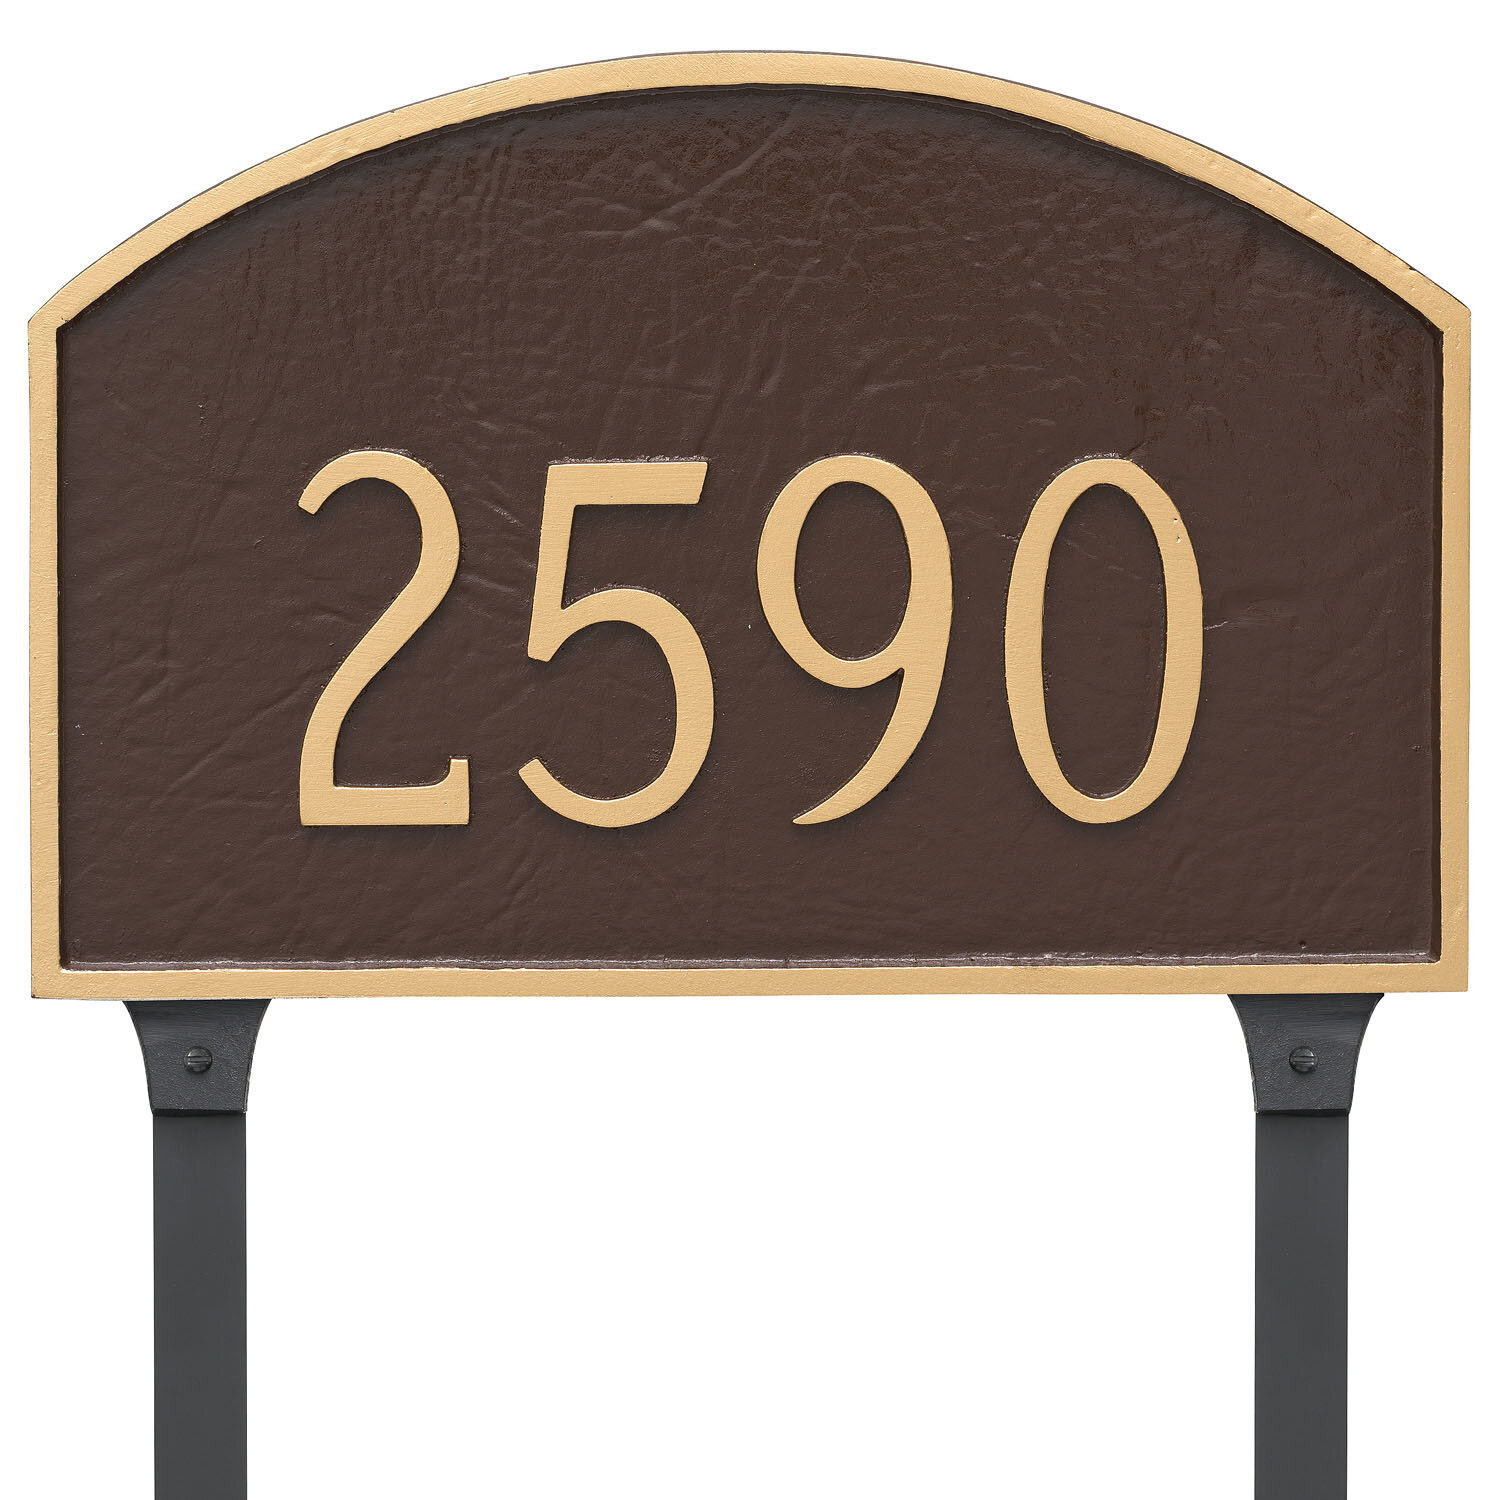 Prestige Arch PETITE Address Plaque Lawn House Sign Numbers wall Custom ONE LINE